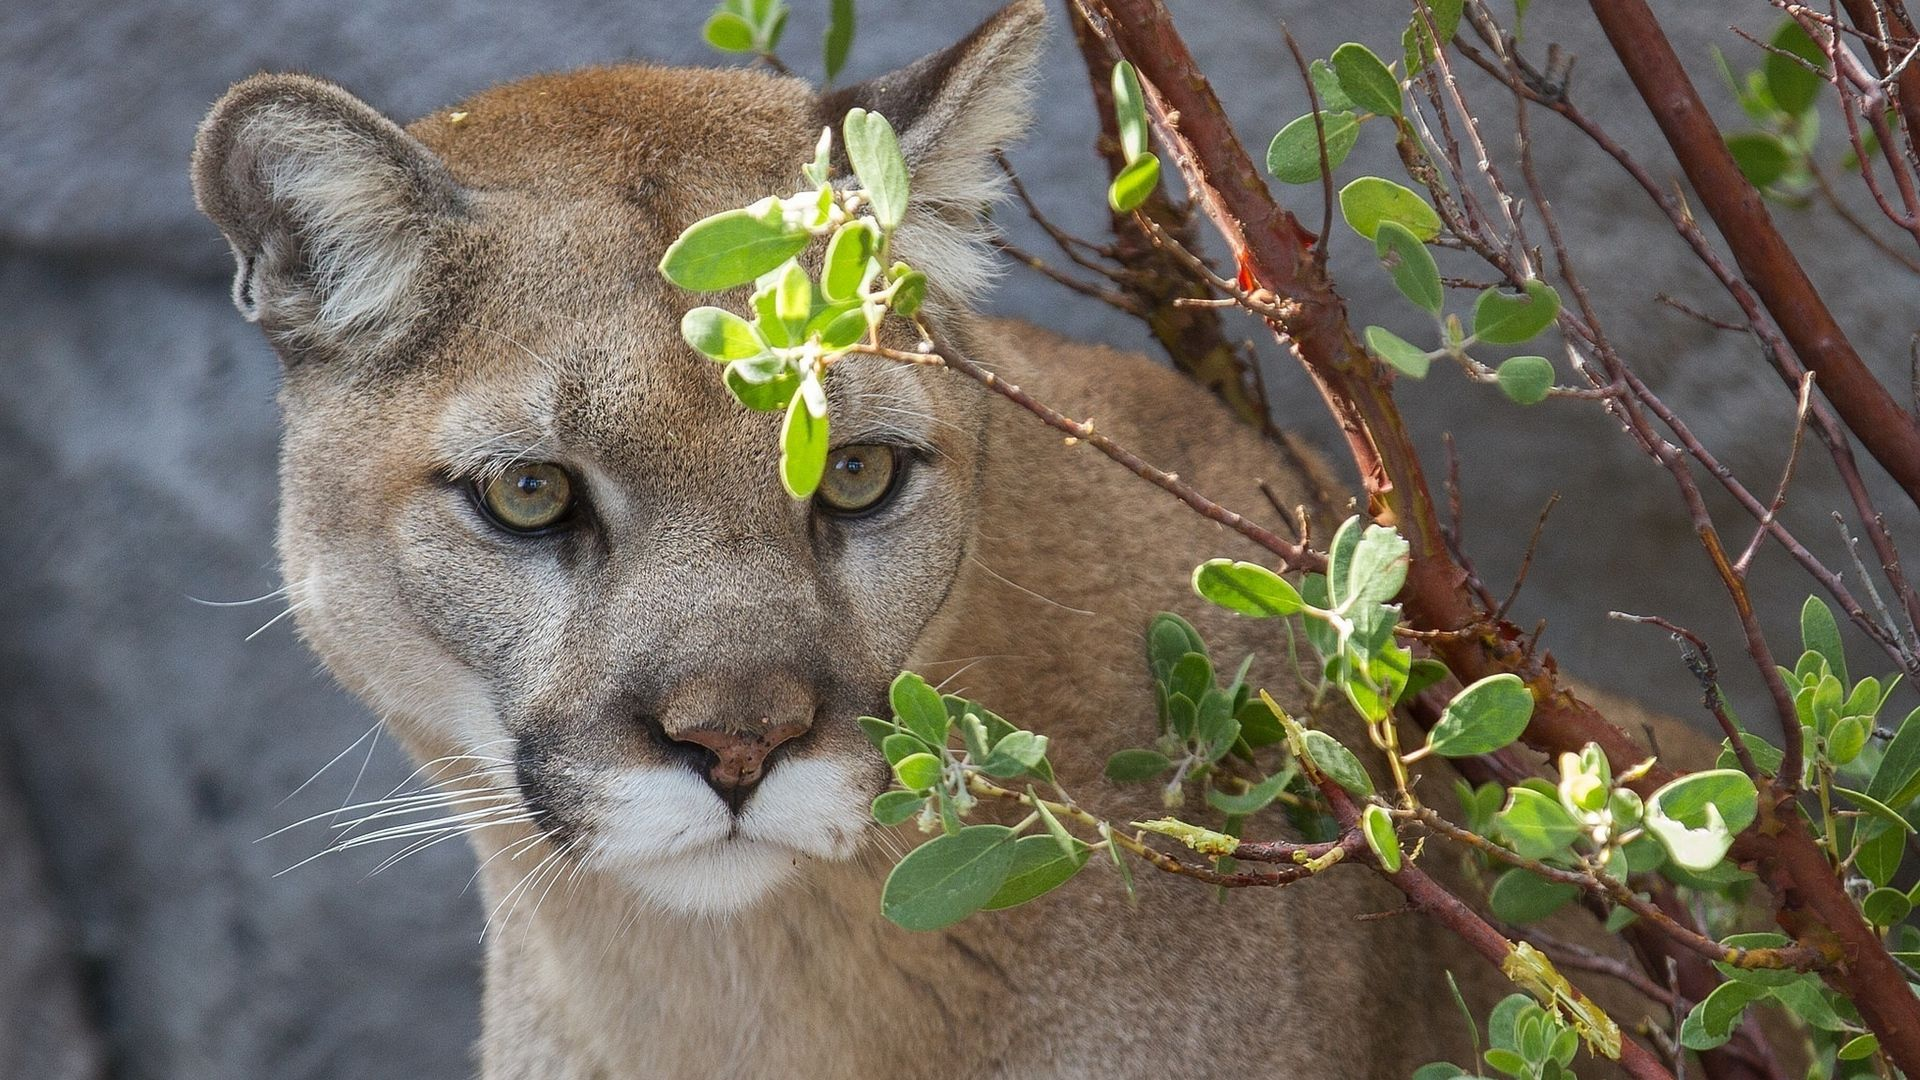 Cougar Hd background picture hd